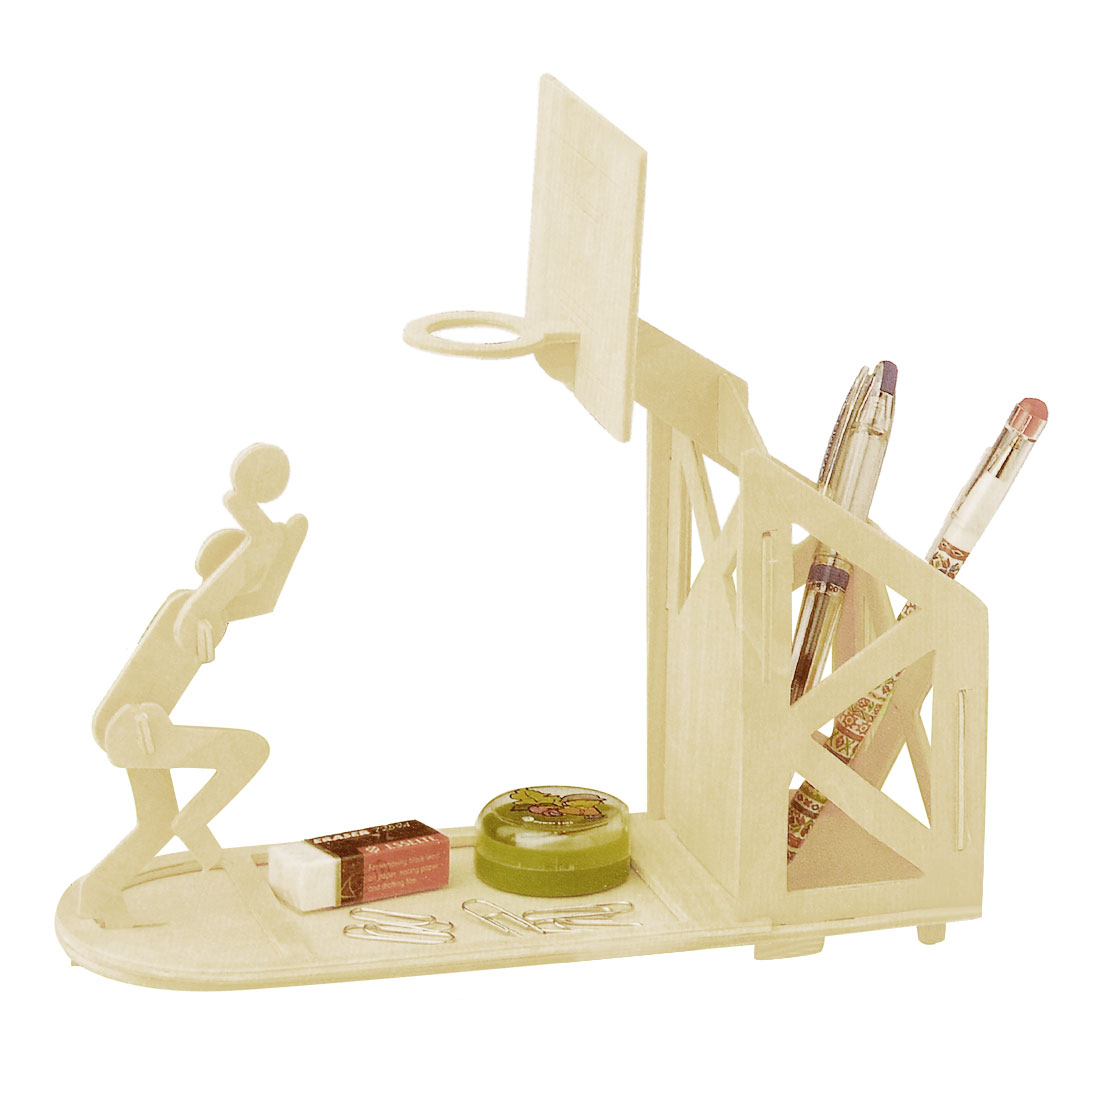 Wood Construction Basketball Pen Holder DIY Puzzle Toy